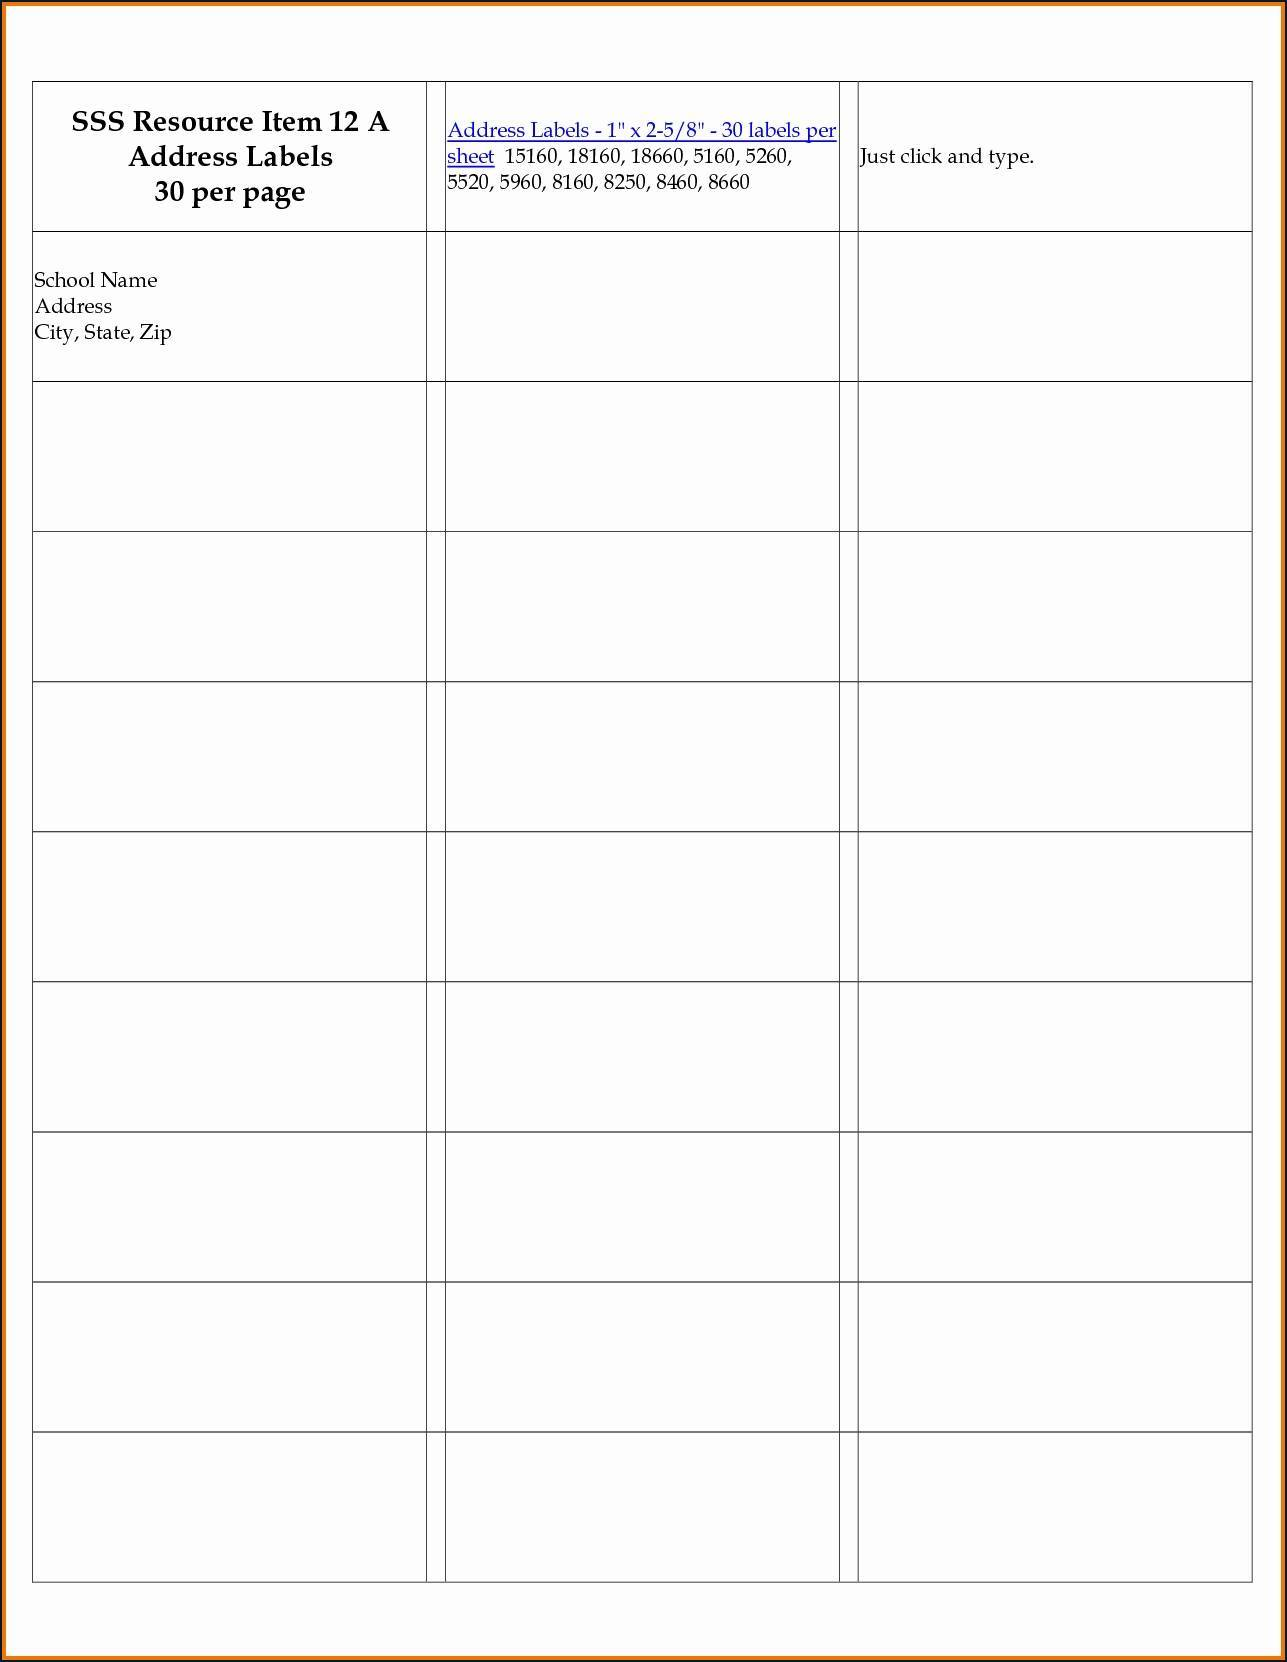 Mailing Label Template Maco